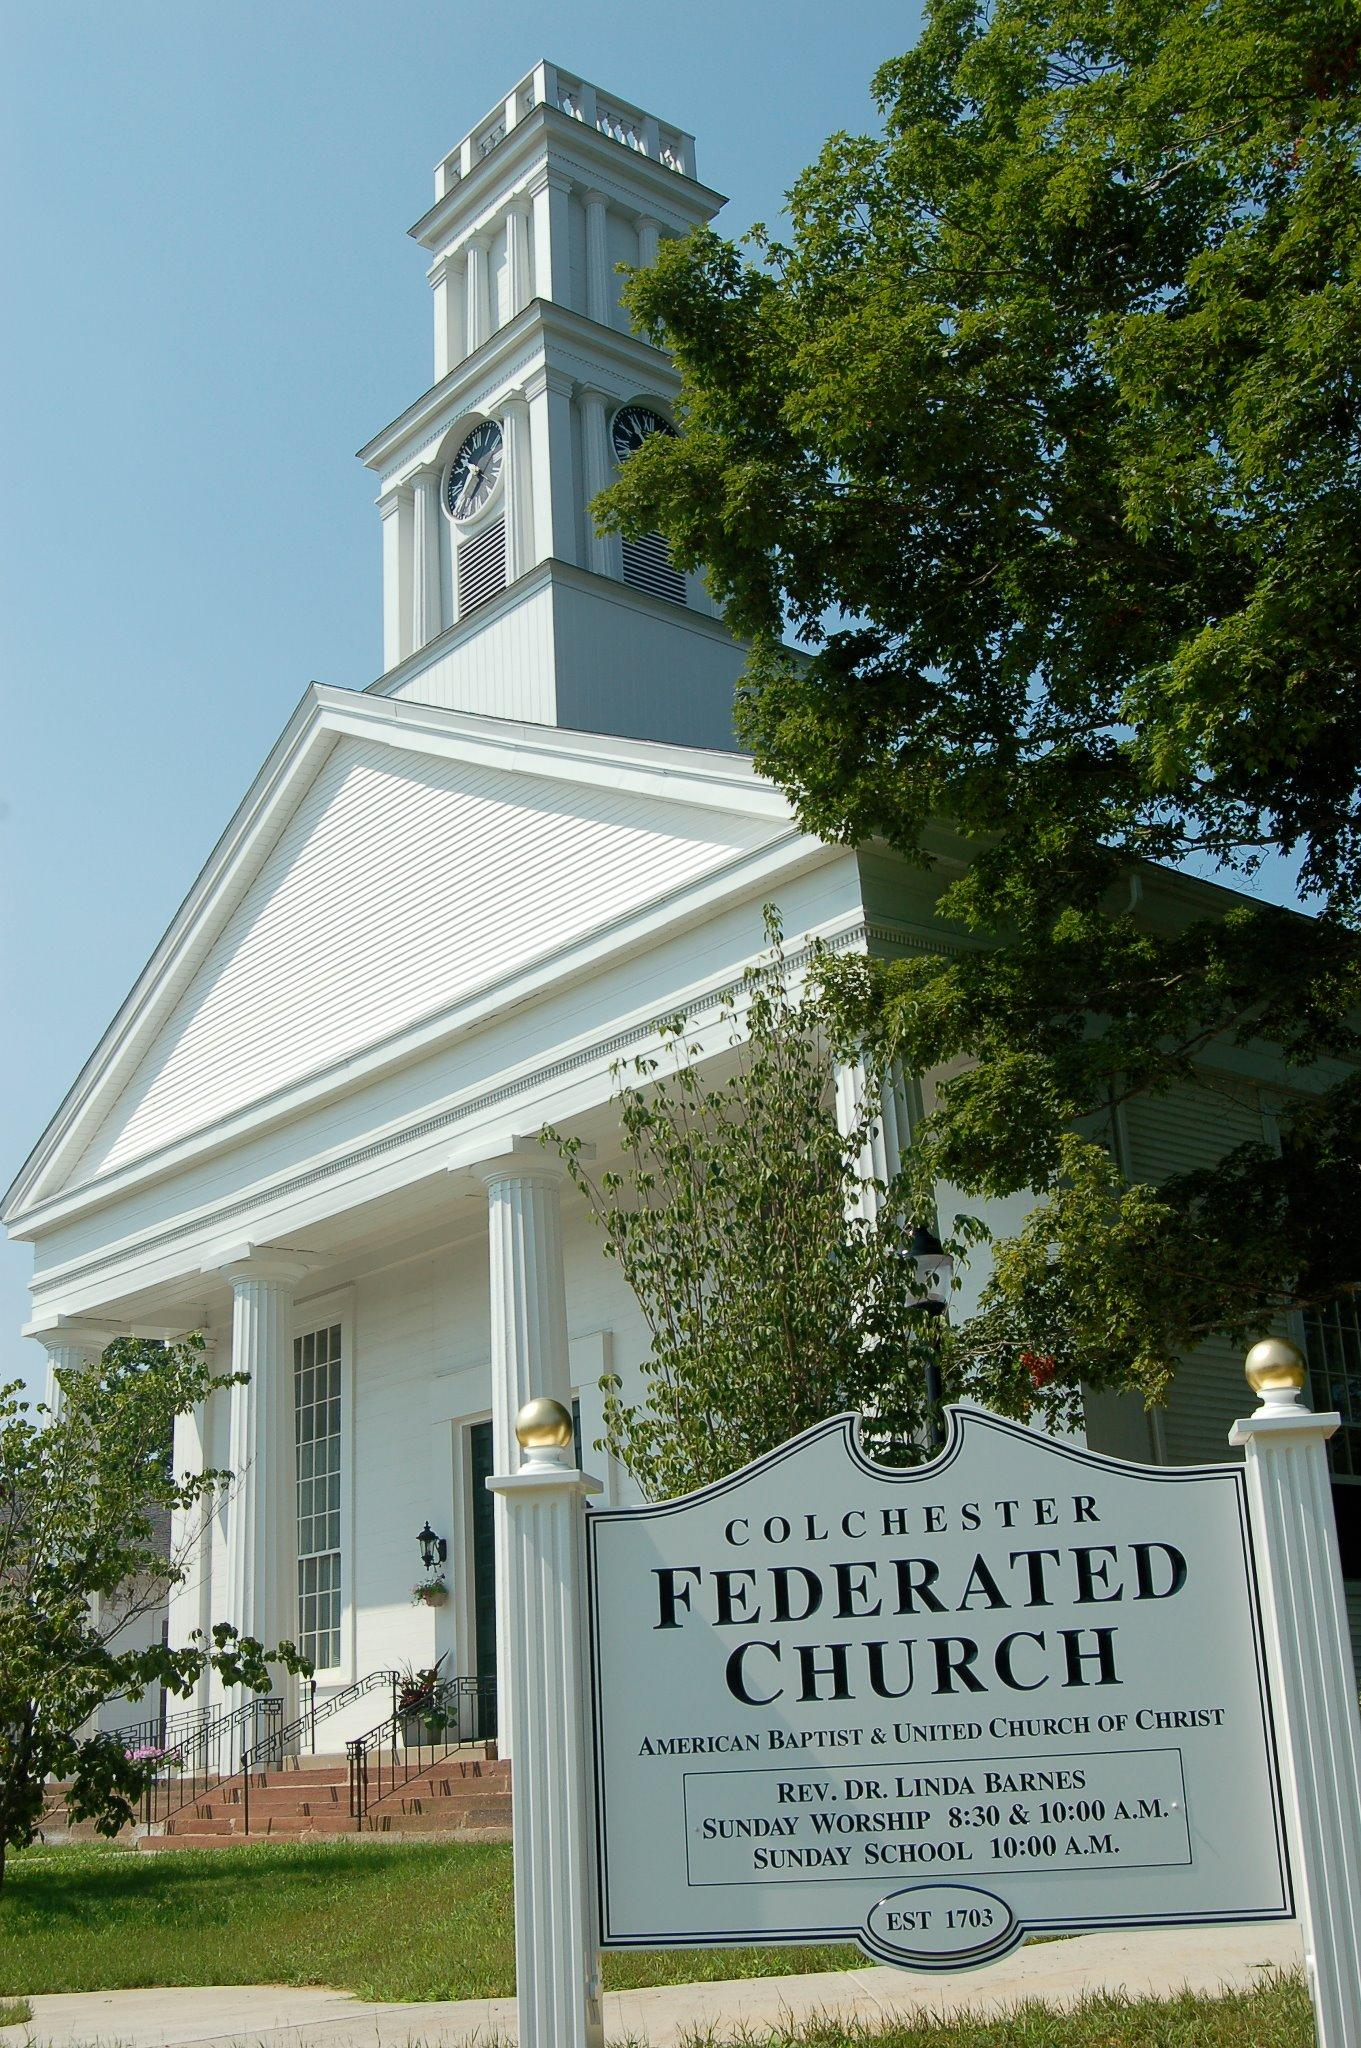 Colchester Federated Church